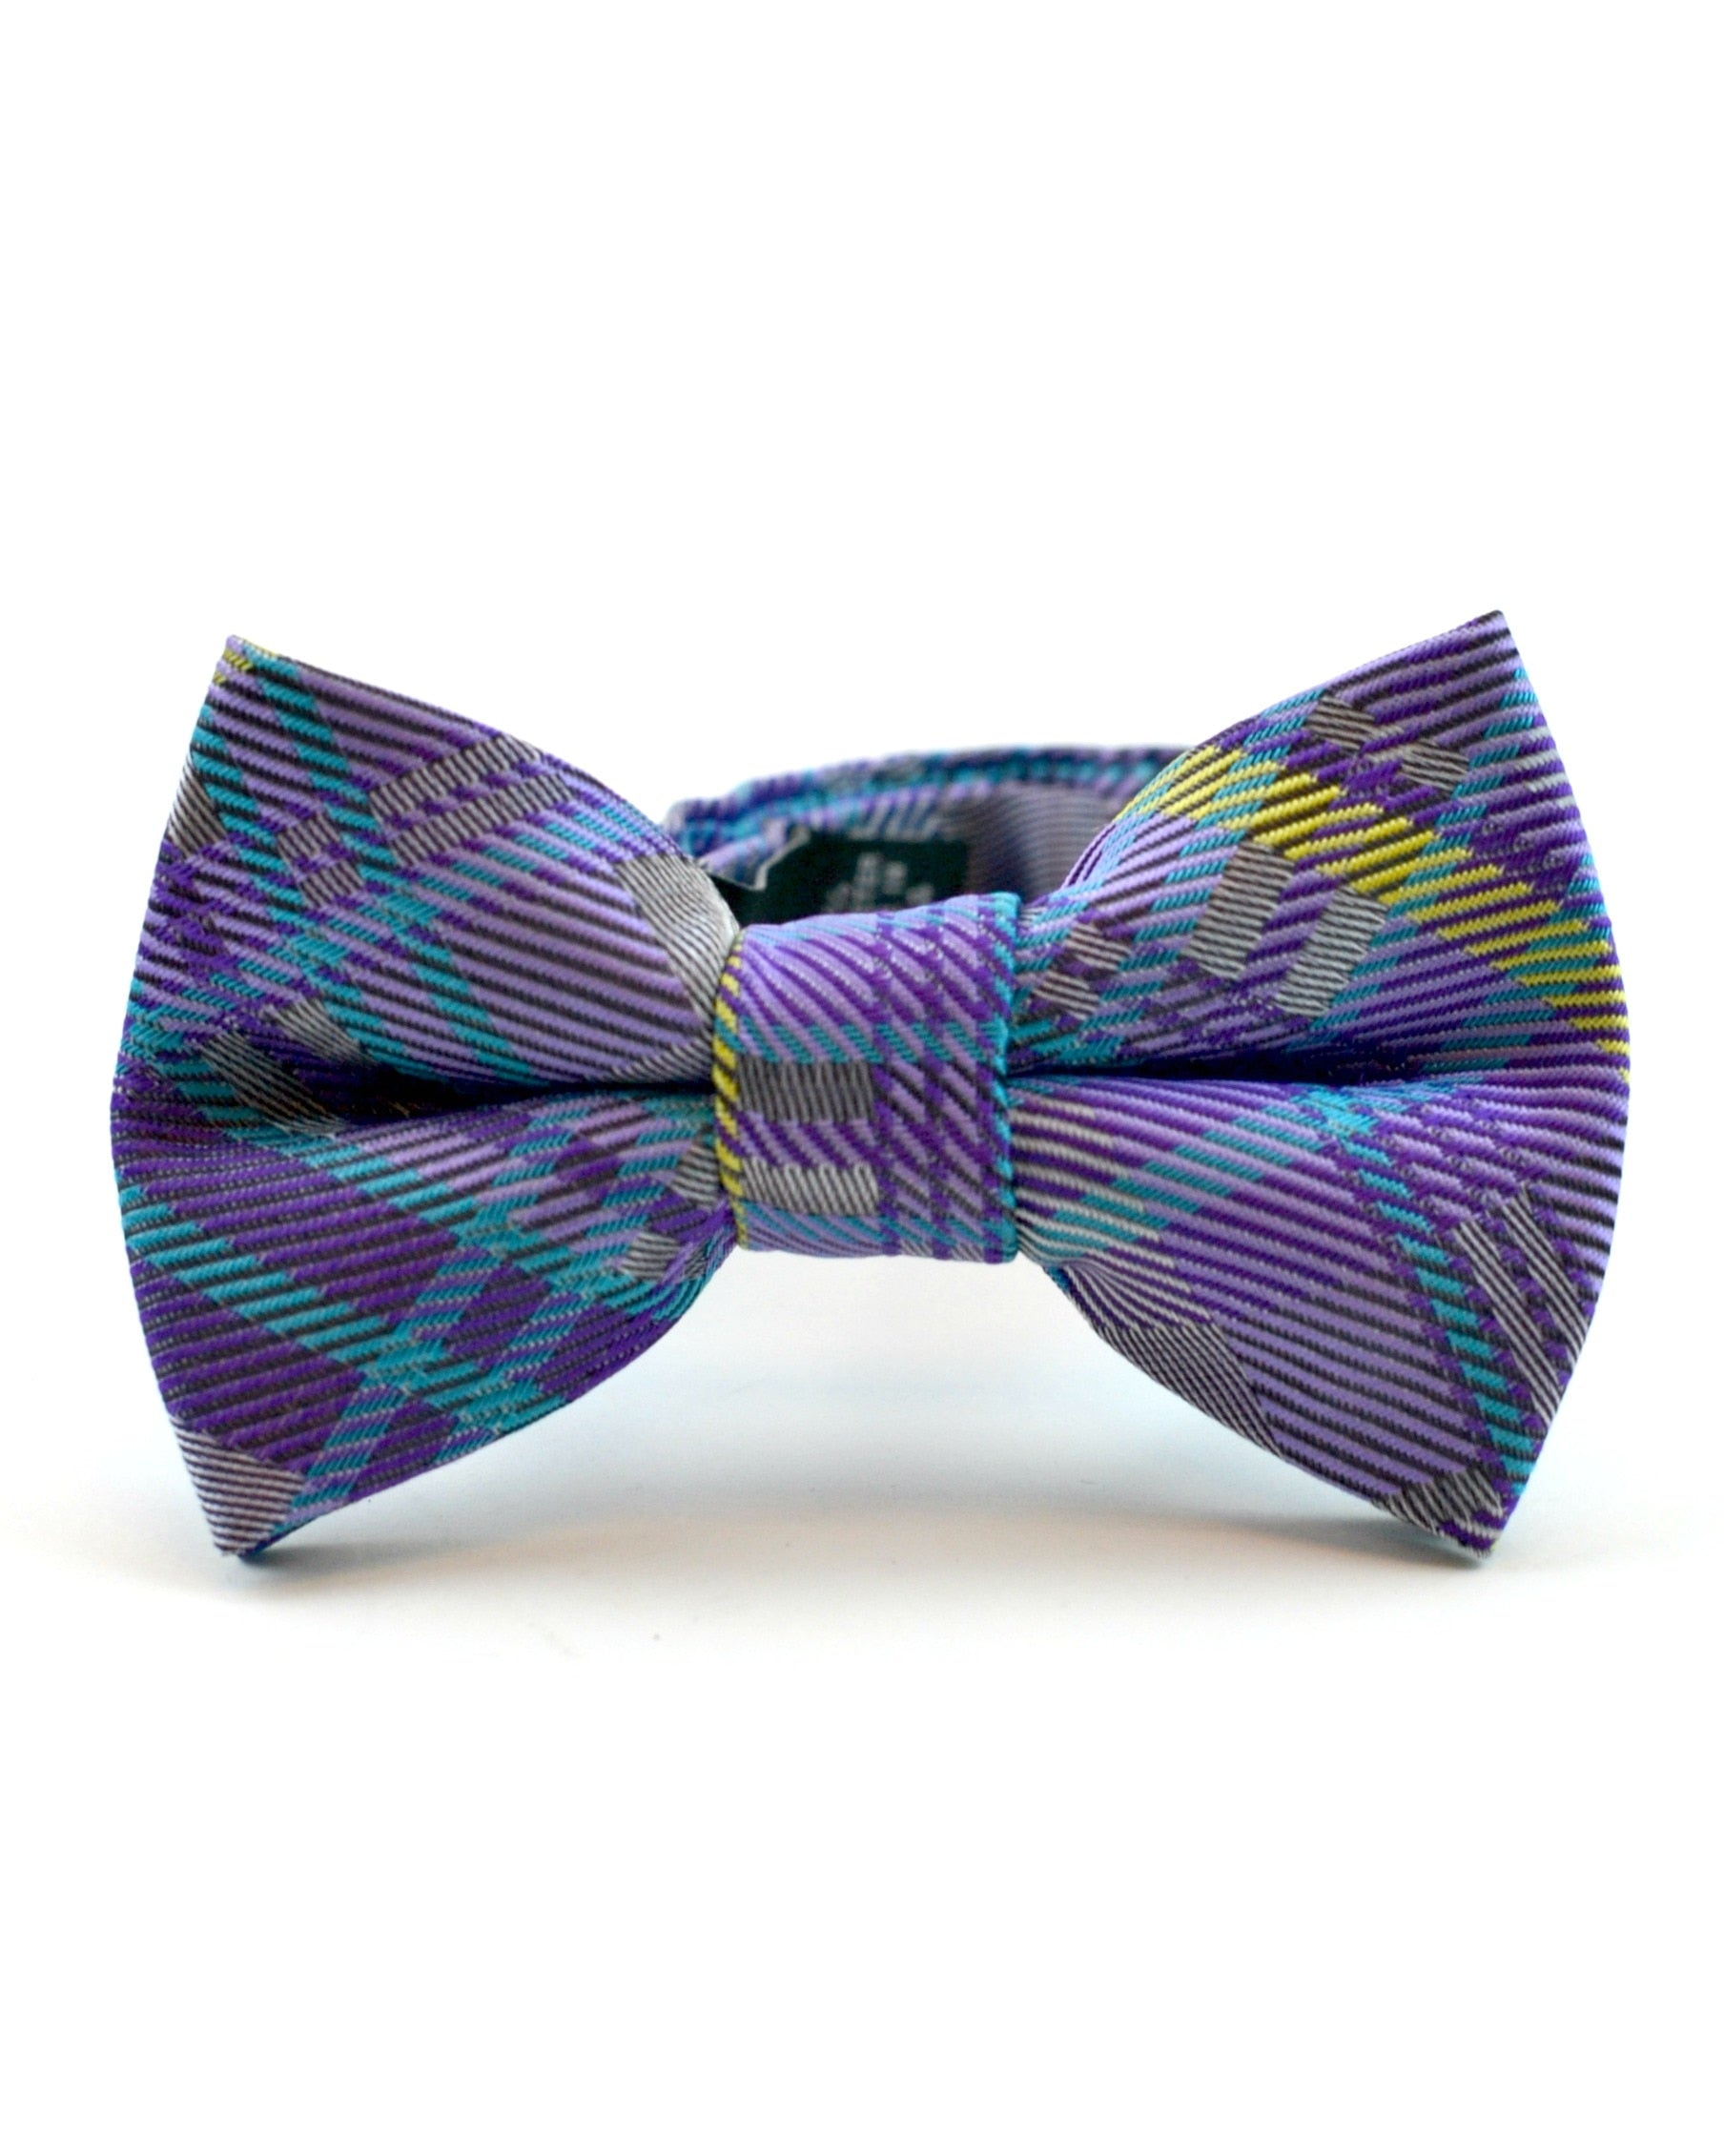 royal-purple-and-yellow-plaid-bow-tie.jpg